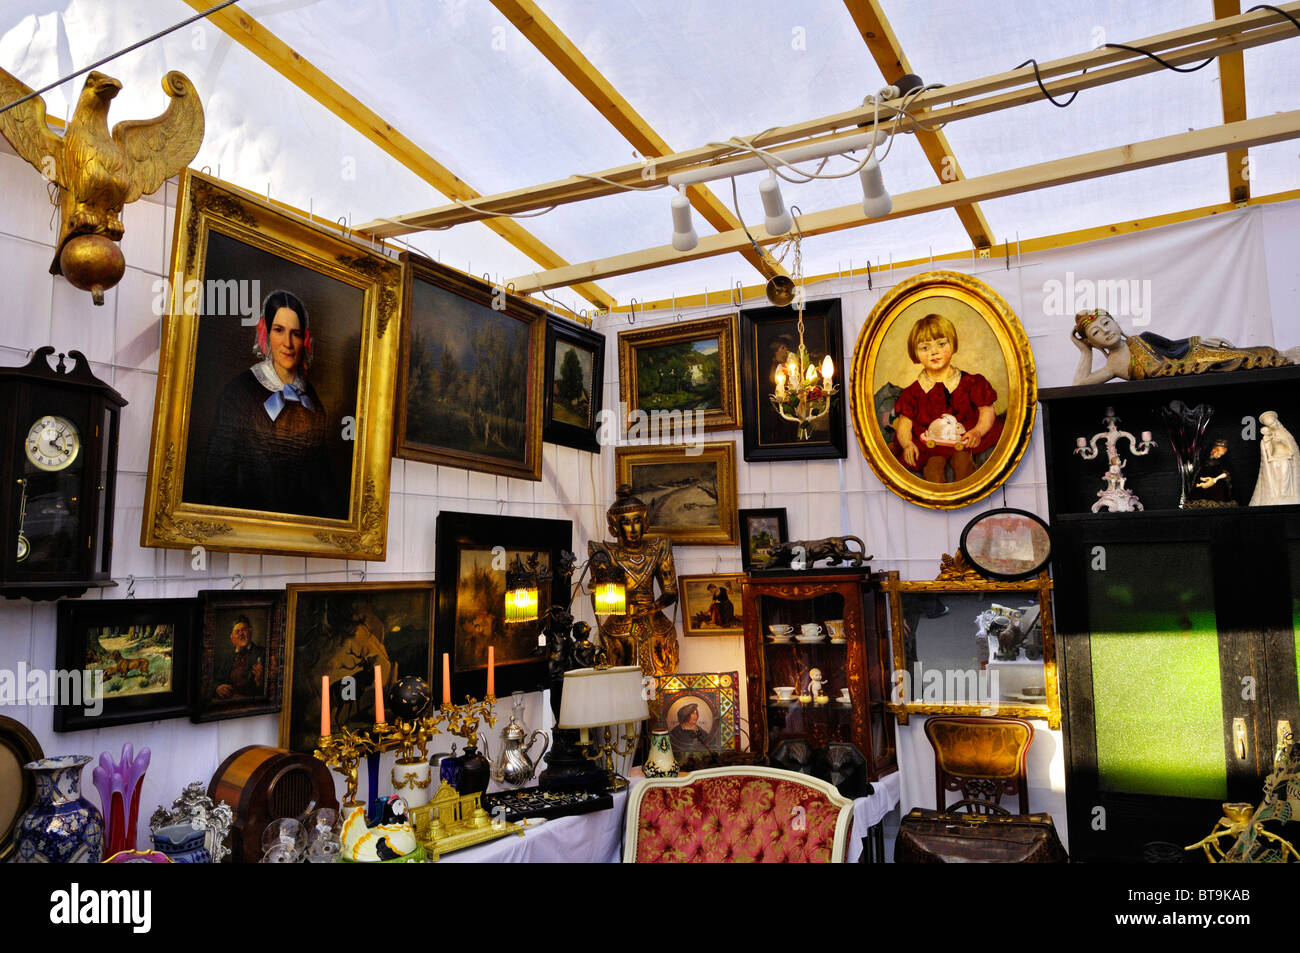 Paintings and knick-knacks, Auer Dult fair, Munich, Bavaria, Germany, Europe - Stock Image